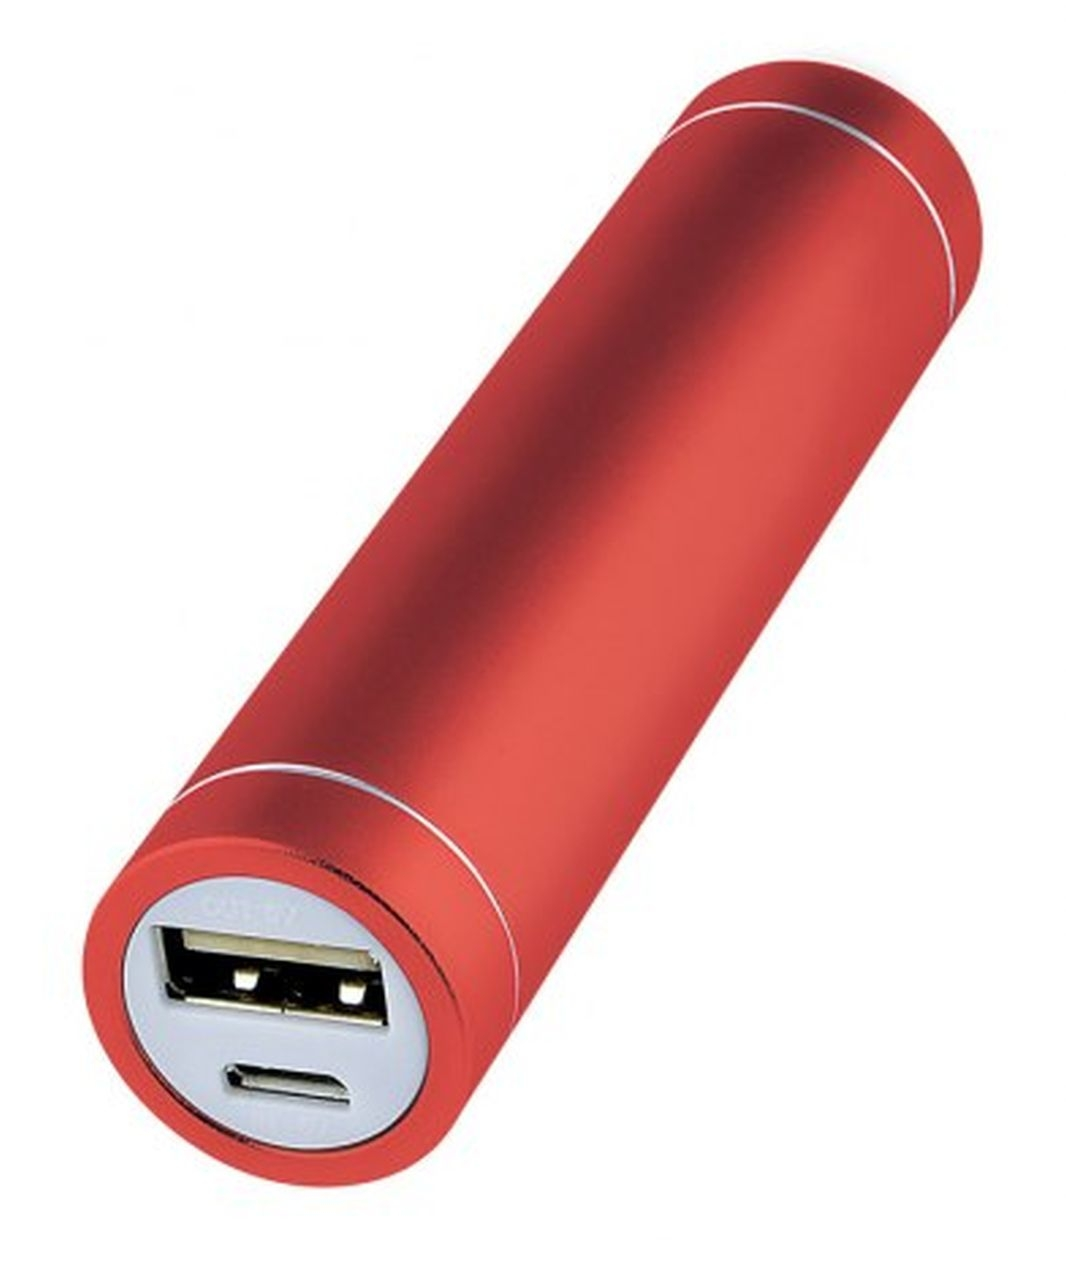 Power bank rosso